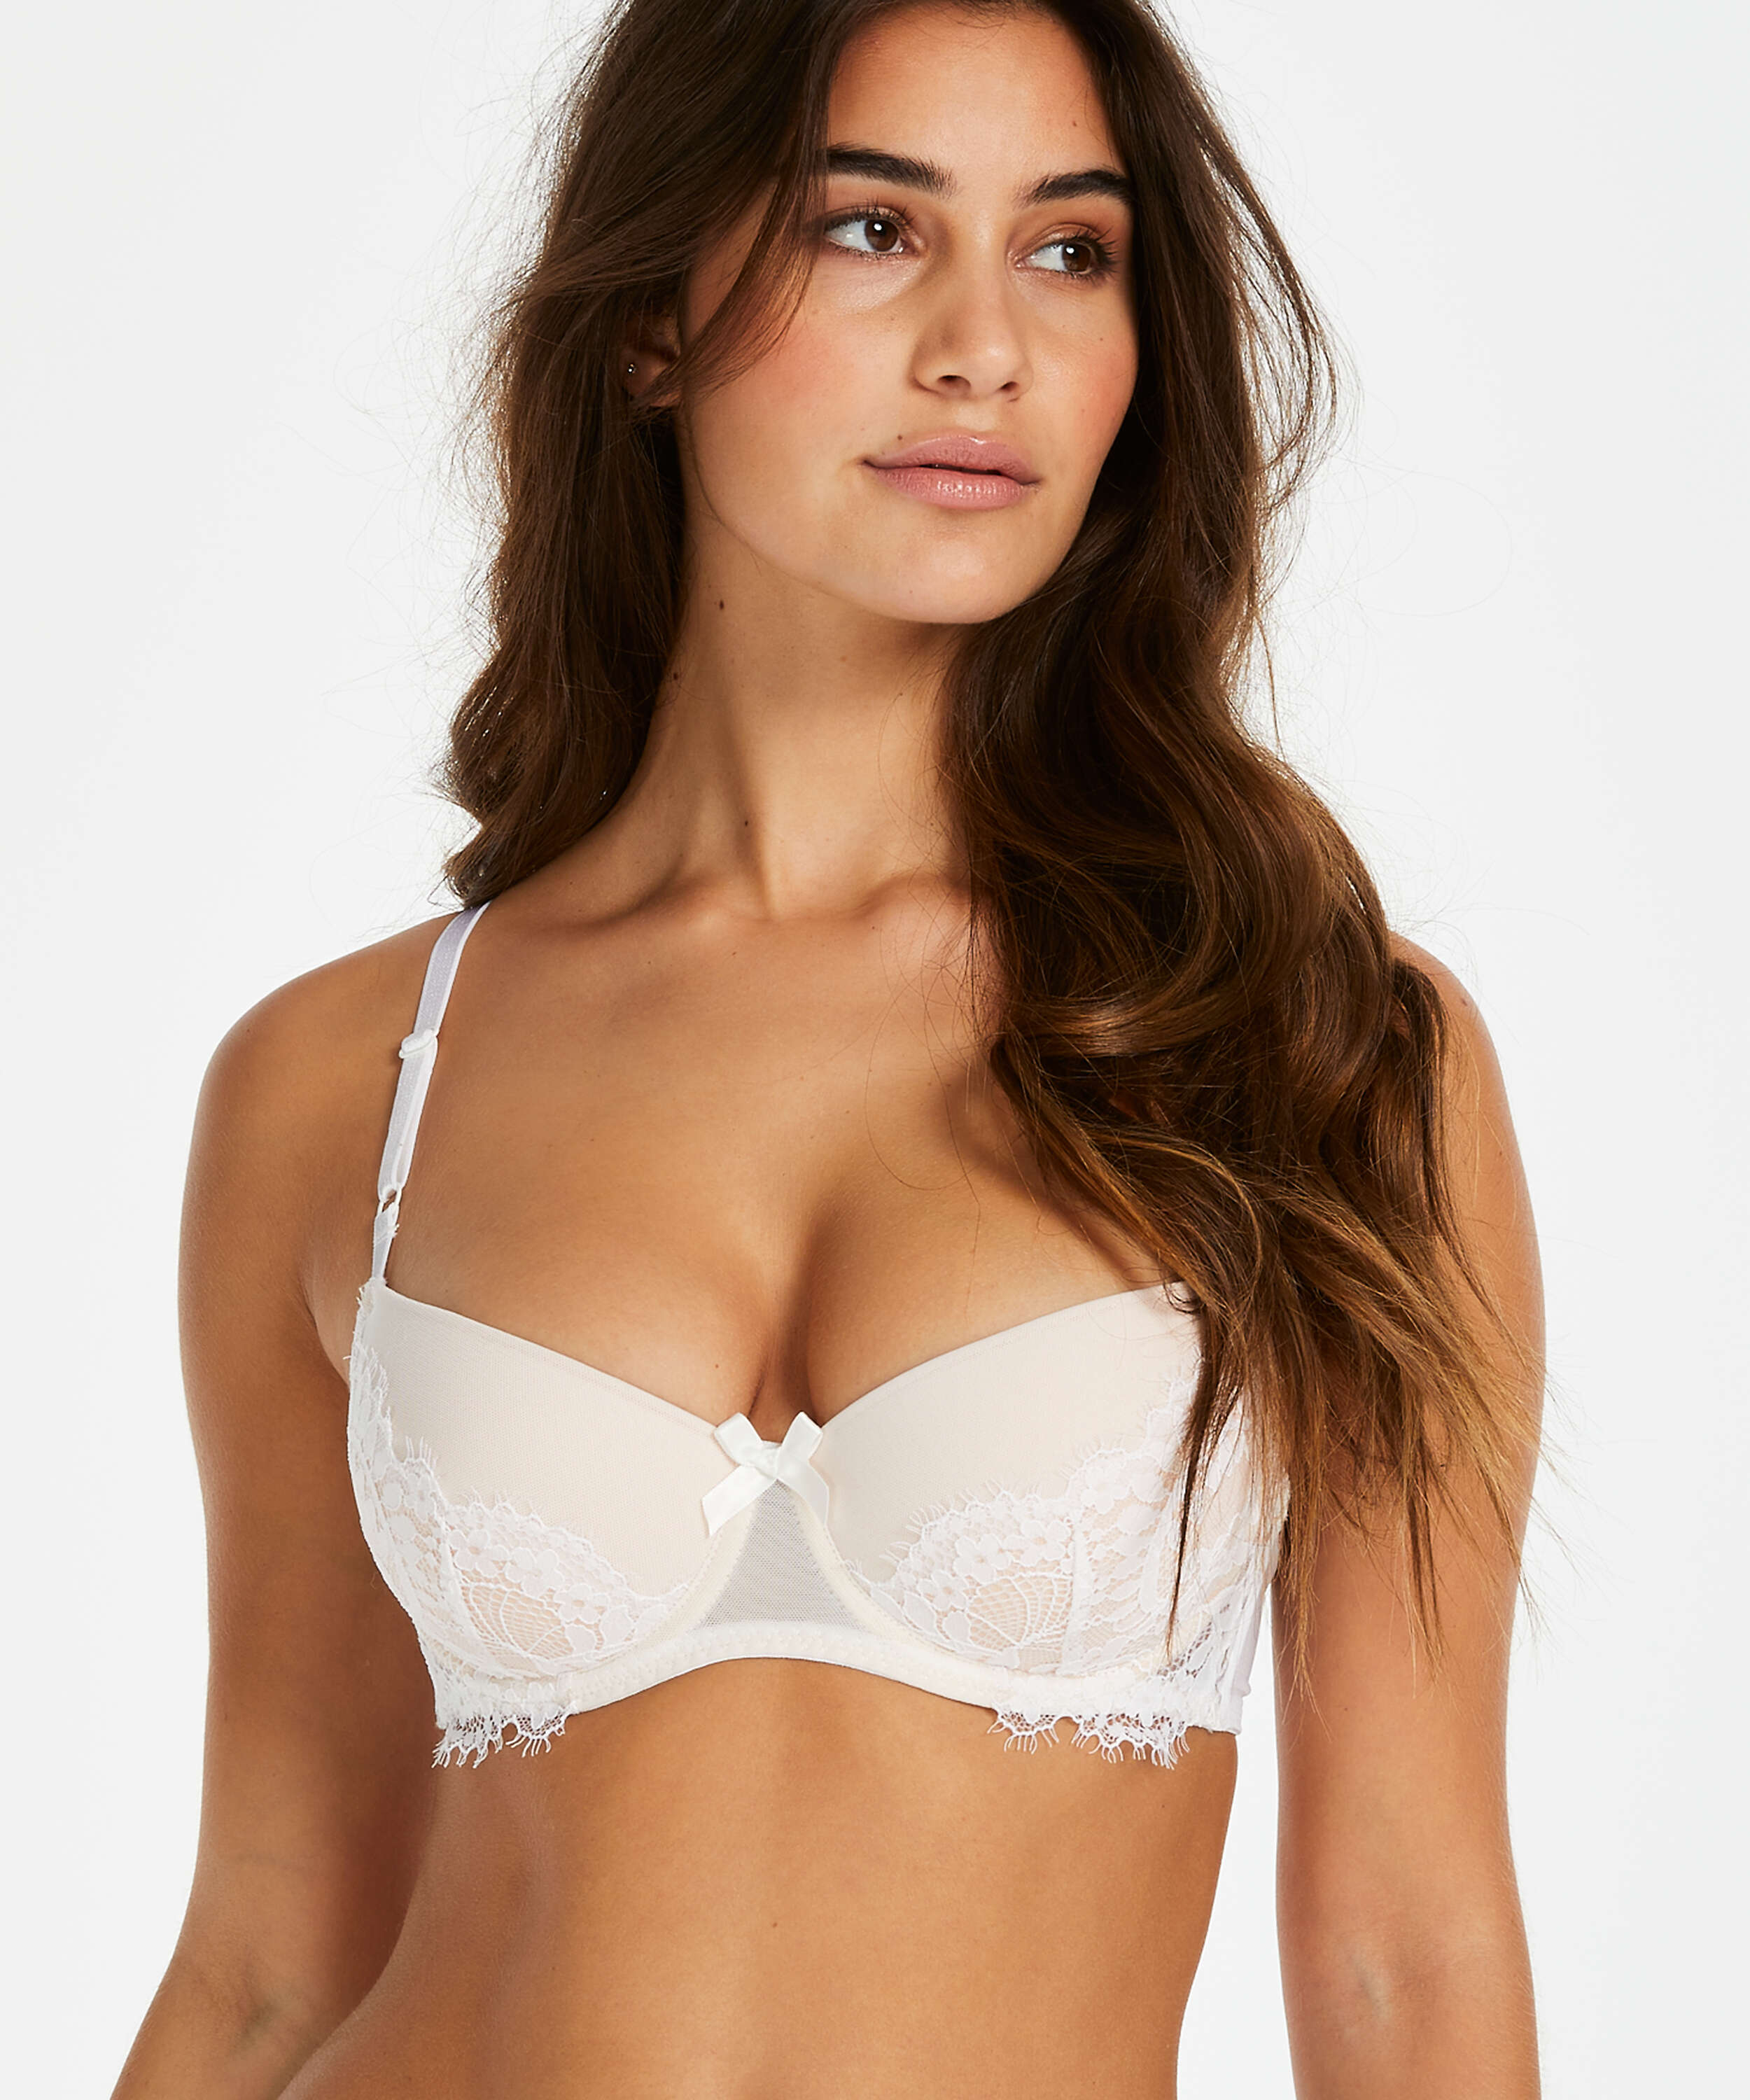 Leyla padded underwired bra, White, main